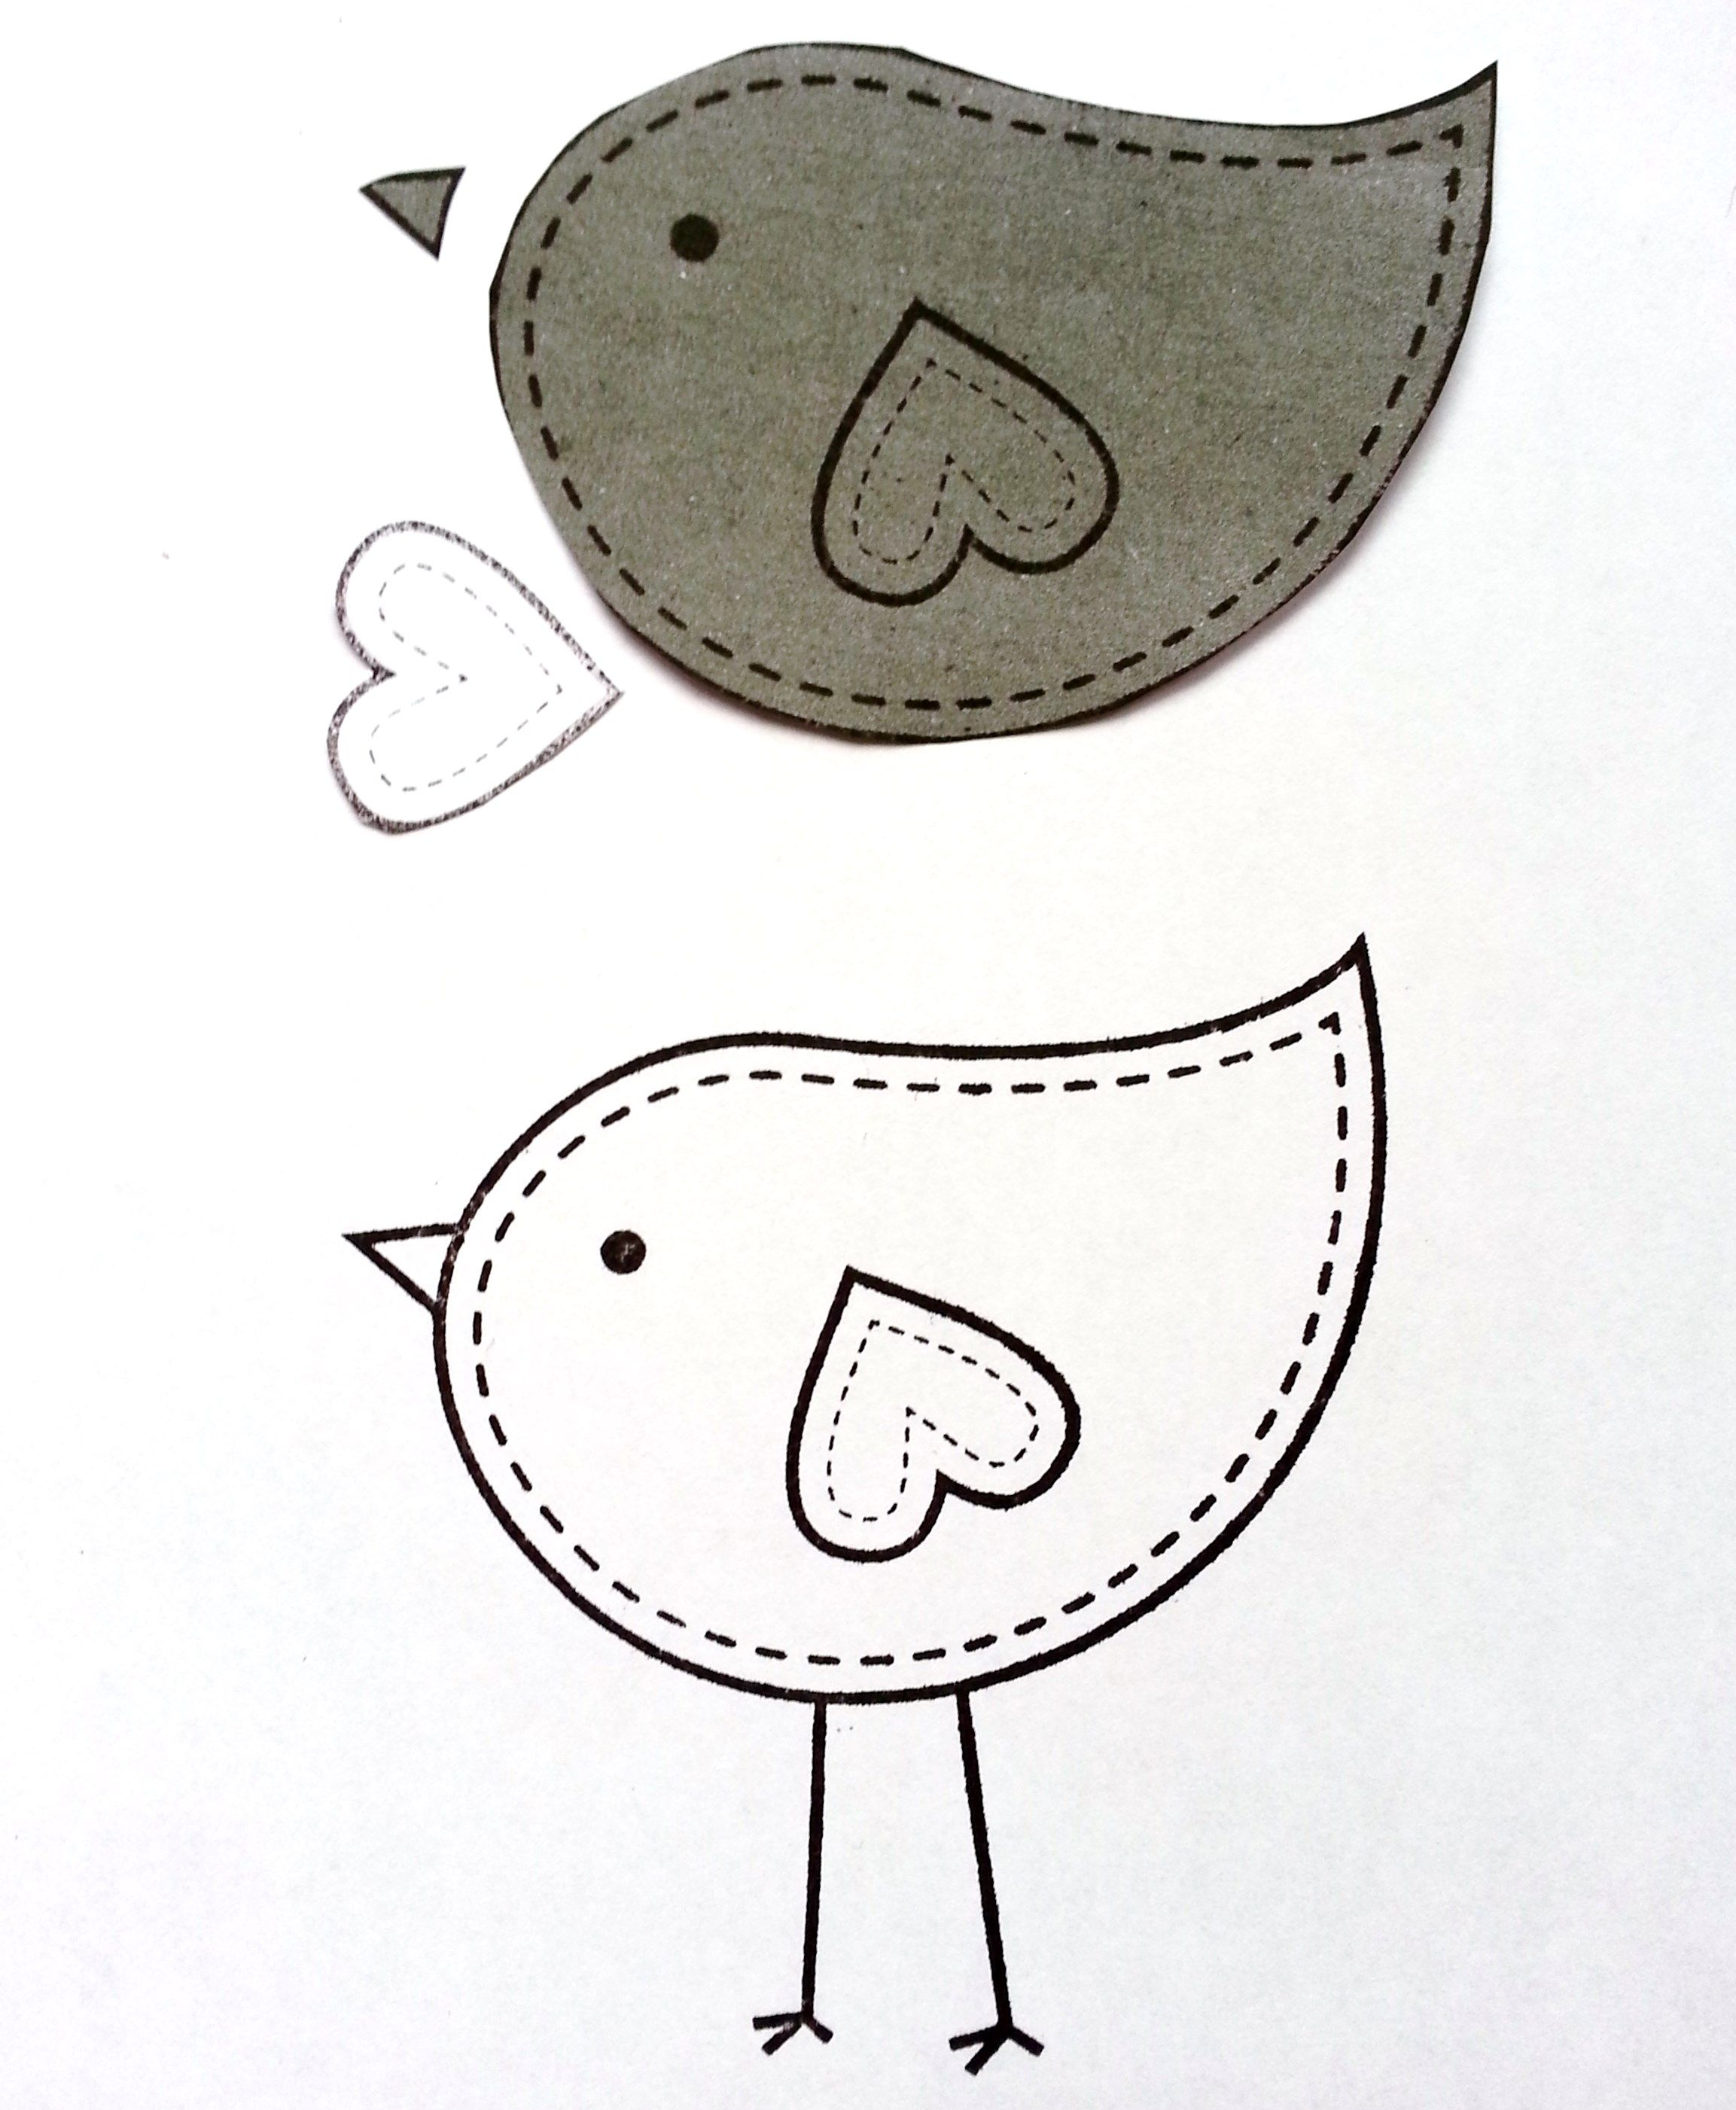 Felt bird template free google search felt pinterest for Bird templates to cut out